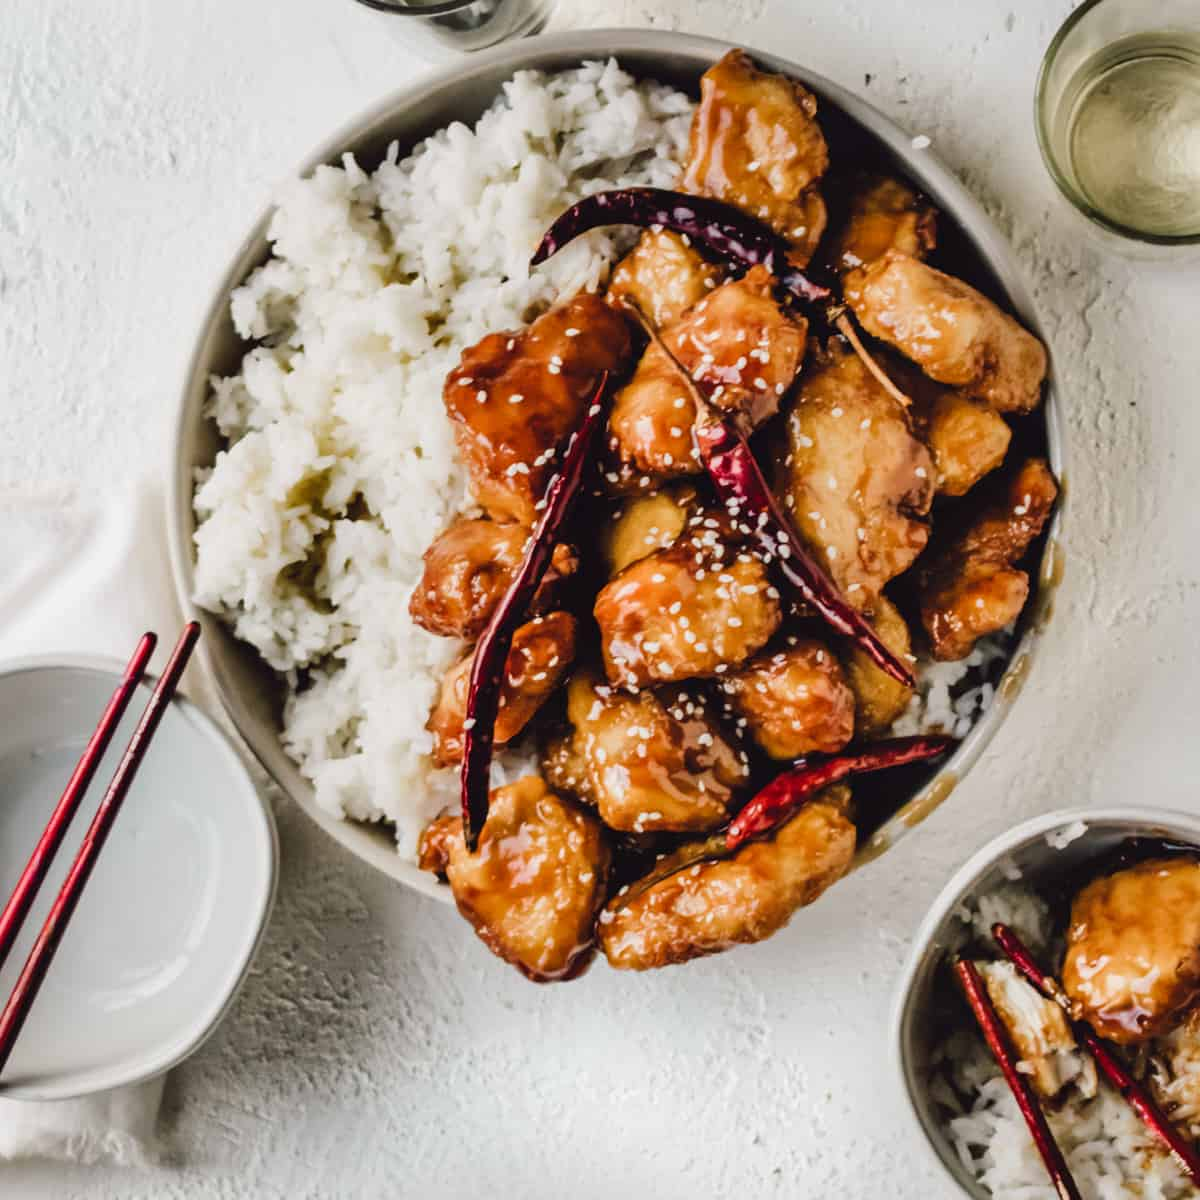 General Tso's chicken with rice in white bowls and red chopsticks.